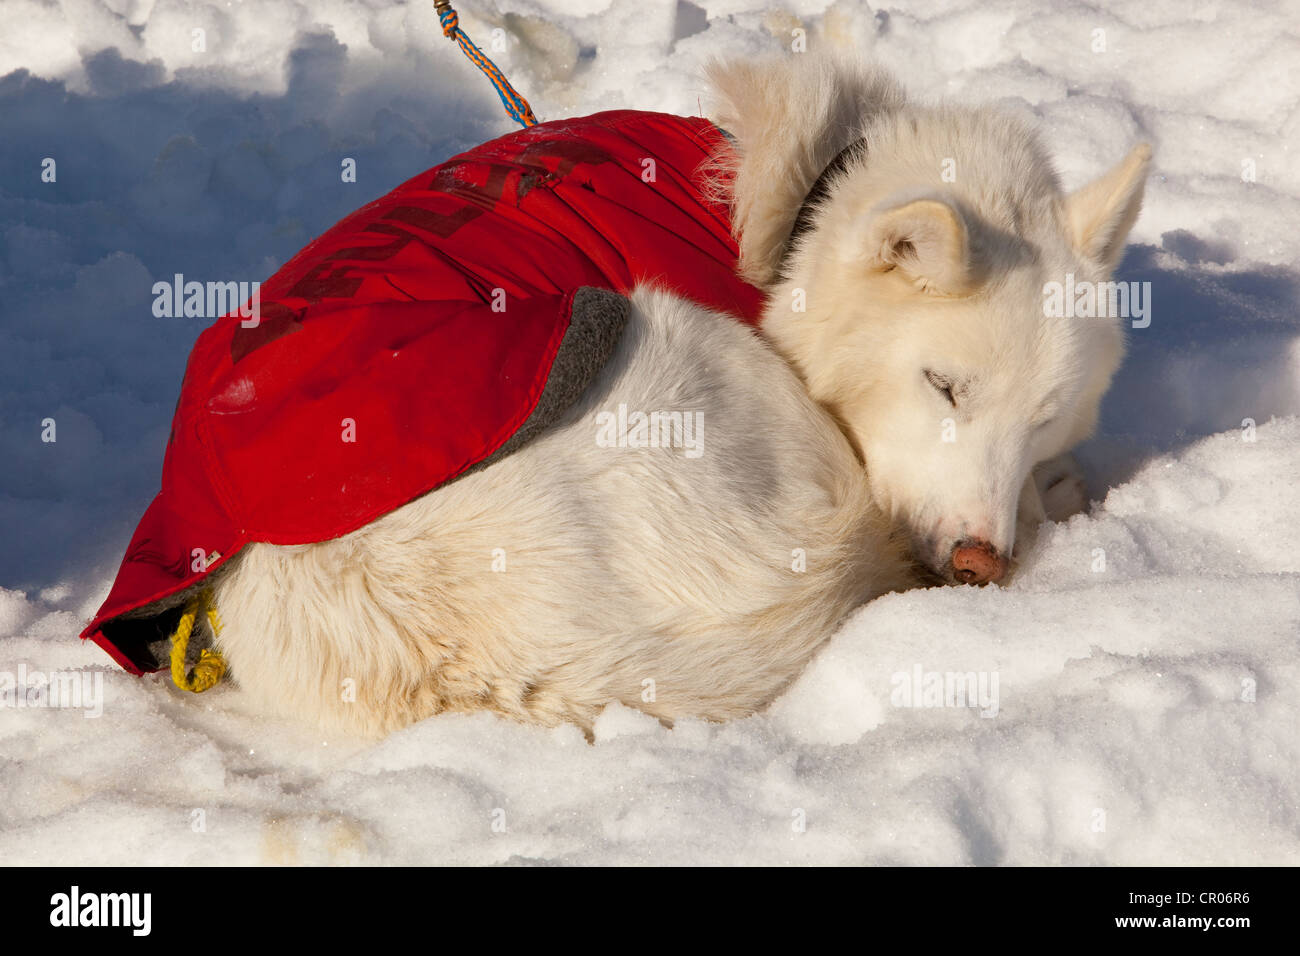 White sled dog with dog coat resting, sleeping in snow and sun, curled up, stake out cable, Alaskan Husky, Yukon - Stock Image